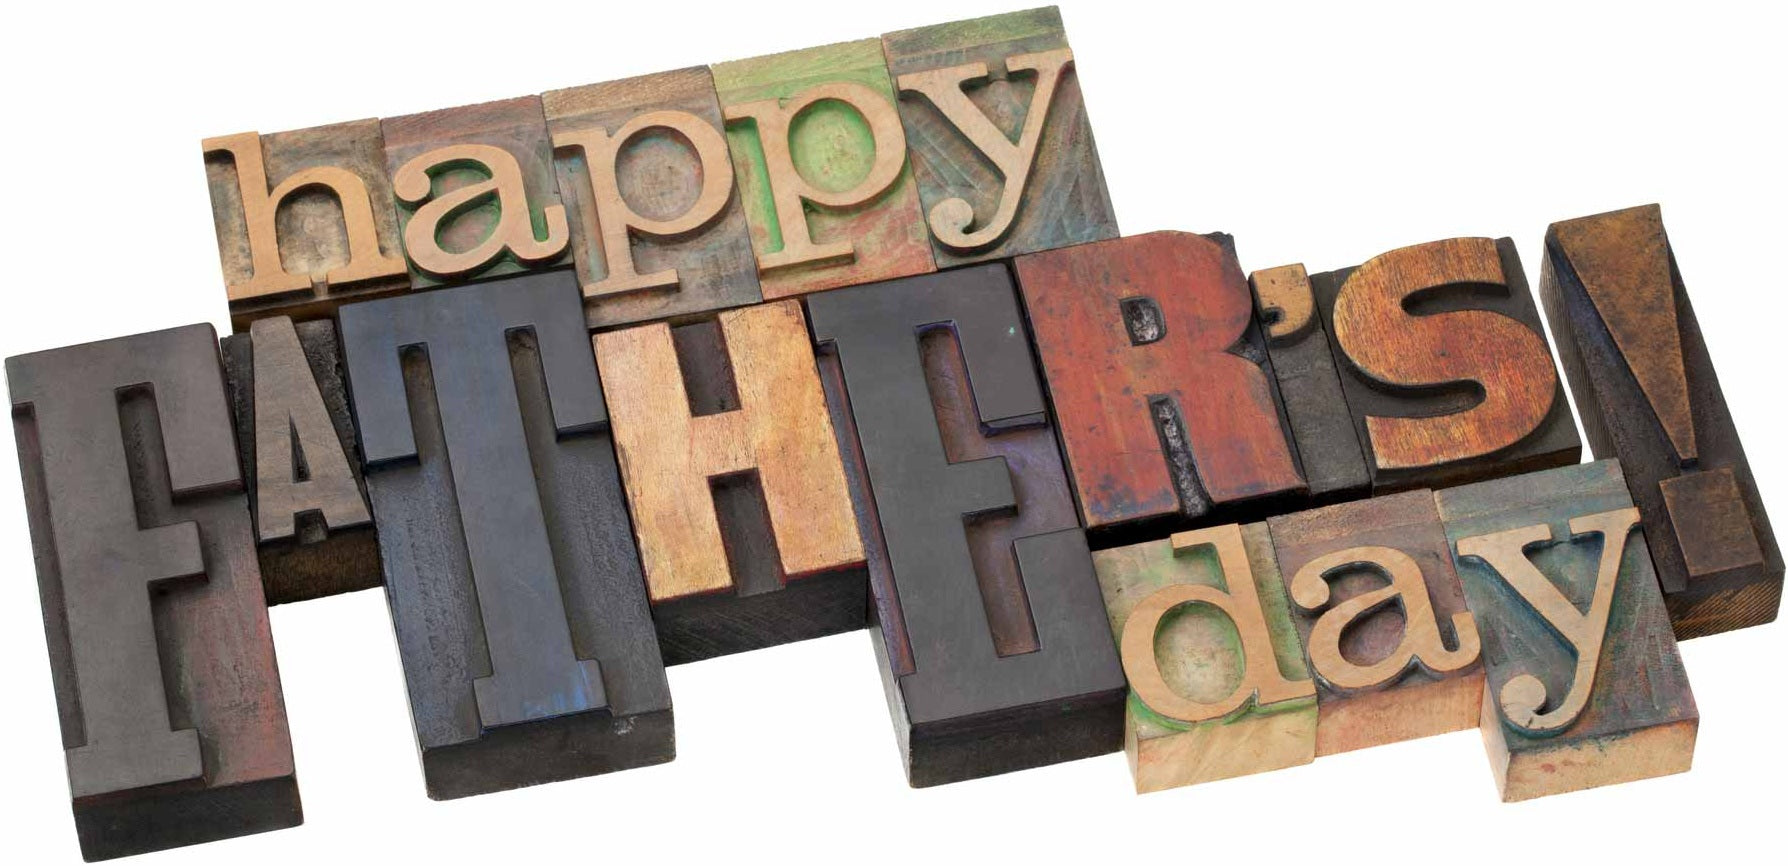 Happy fathers day to all and to all a good night.